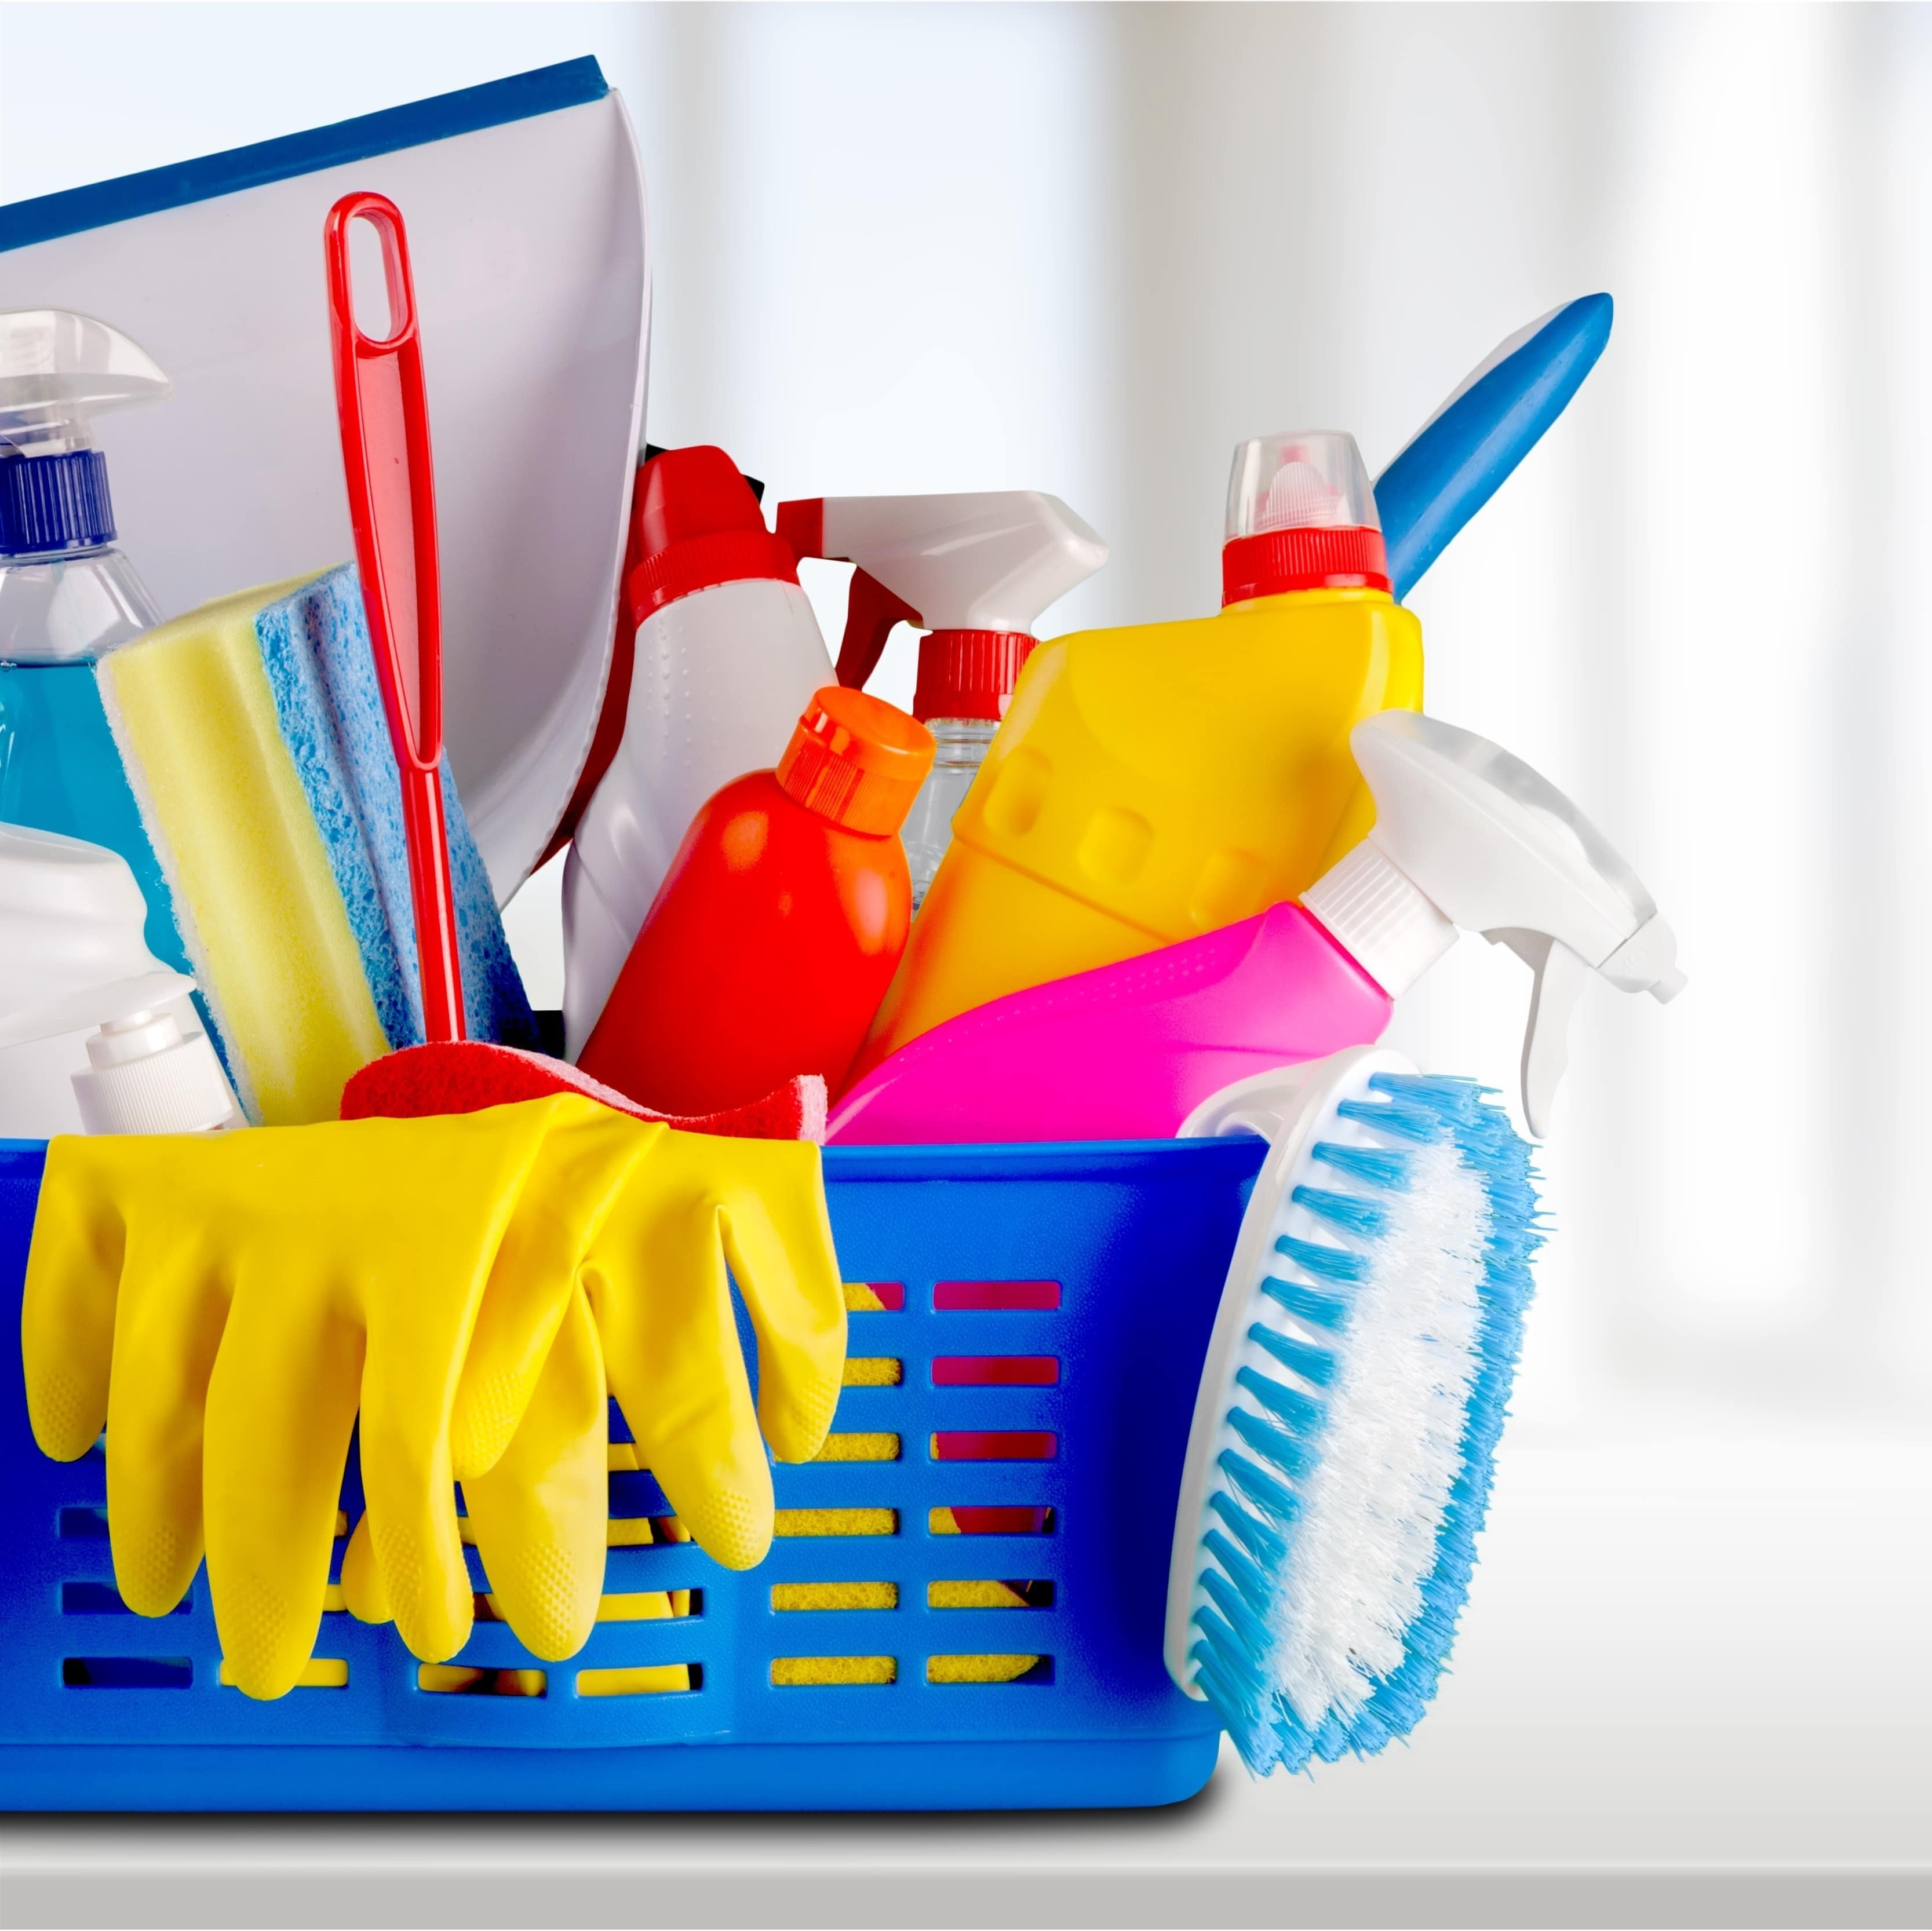 Cleaning Supplies | Brightside Cleaning